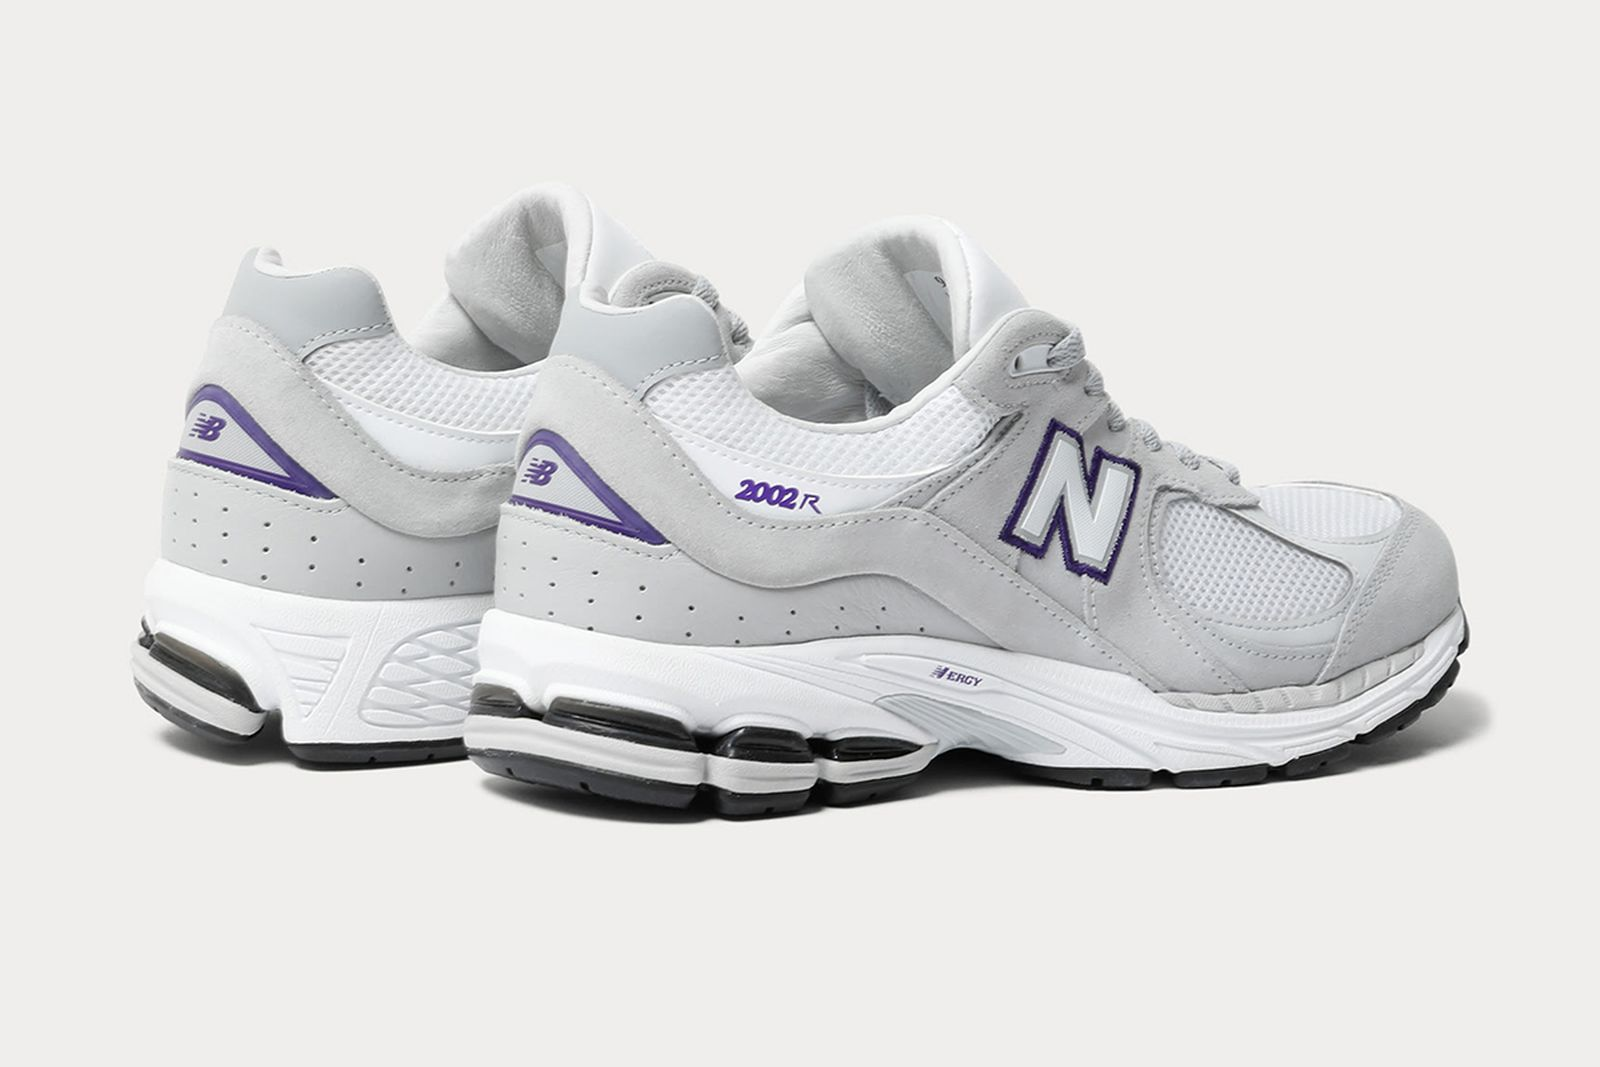 beauty youth united arrows new balance 2002r collab (5)